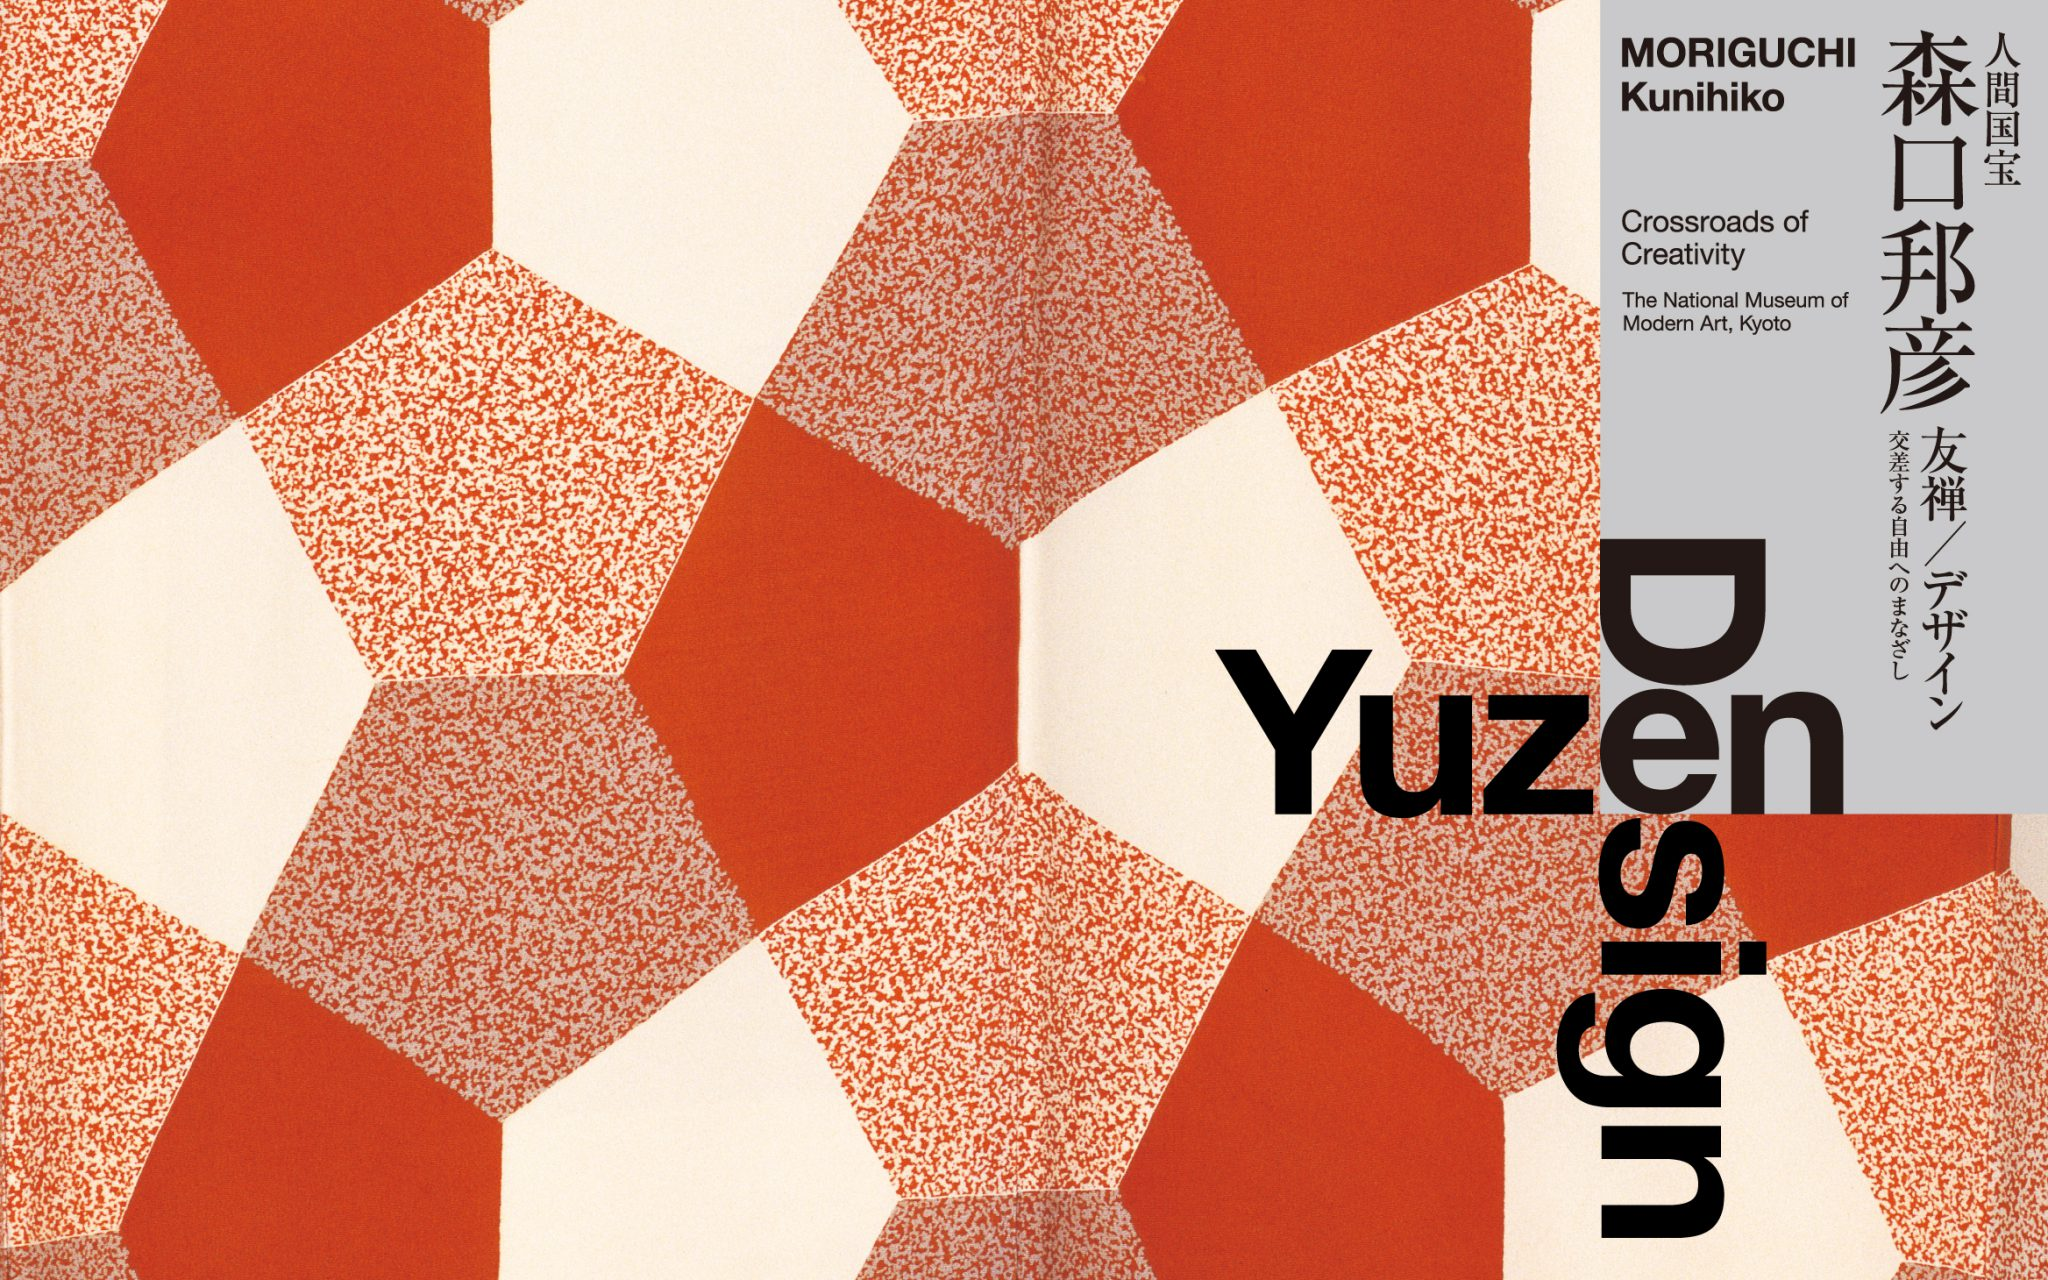 MORIGUCHI Kunihiko: Yuzen / Design – Crossroads of Creativity